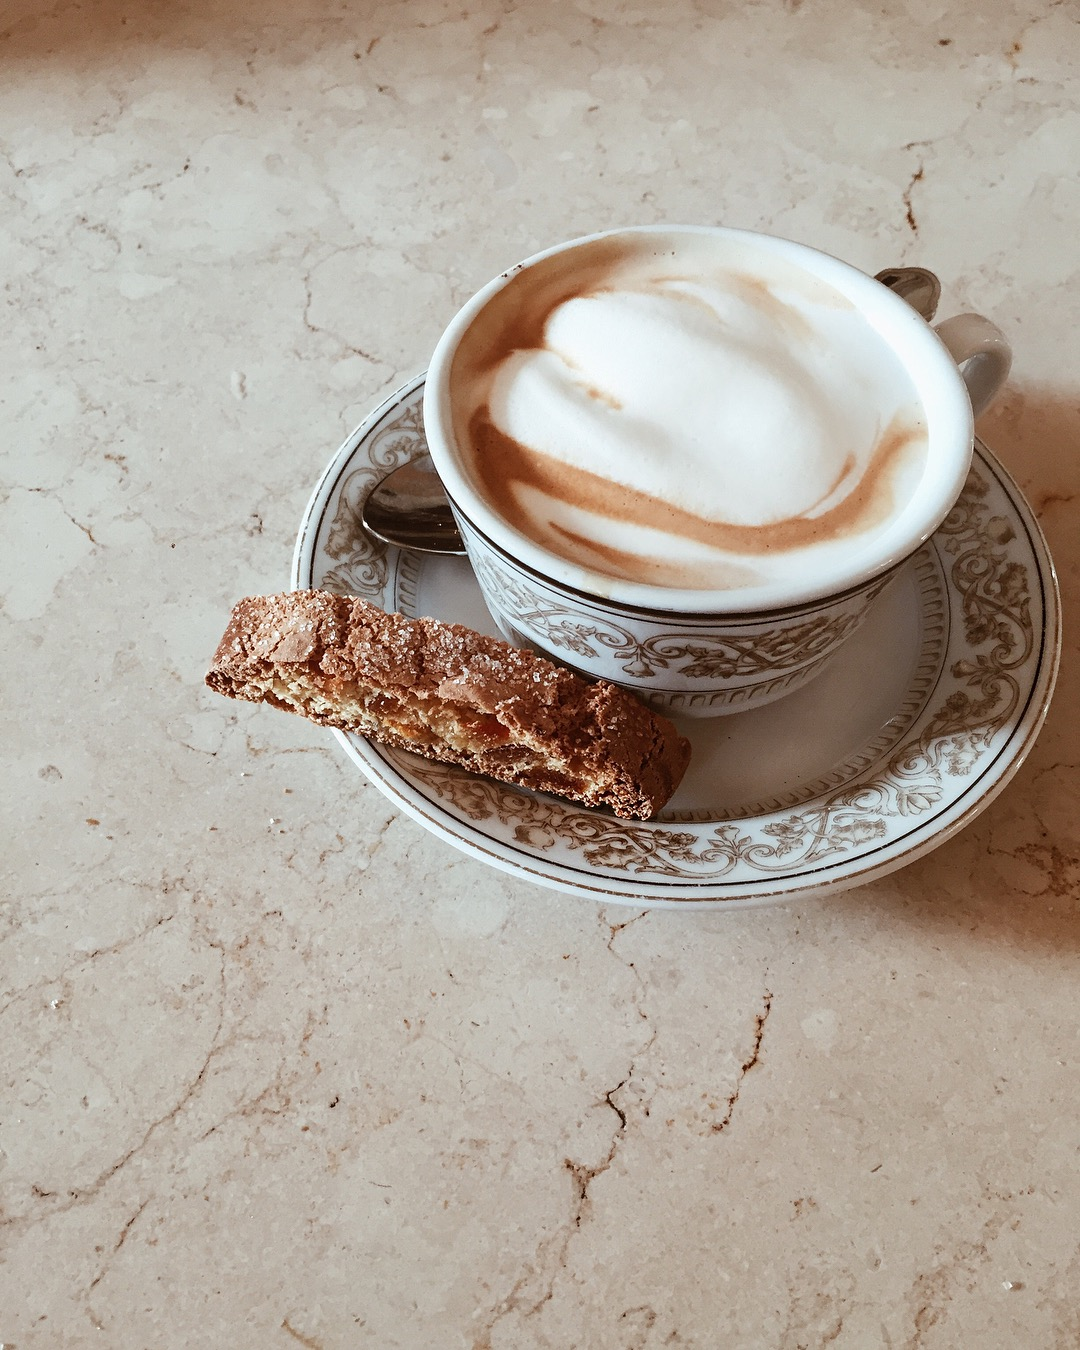 Cappuccino at Caffe Scudieri, Florence, Italy